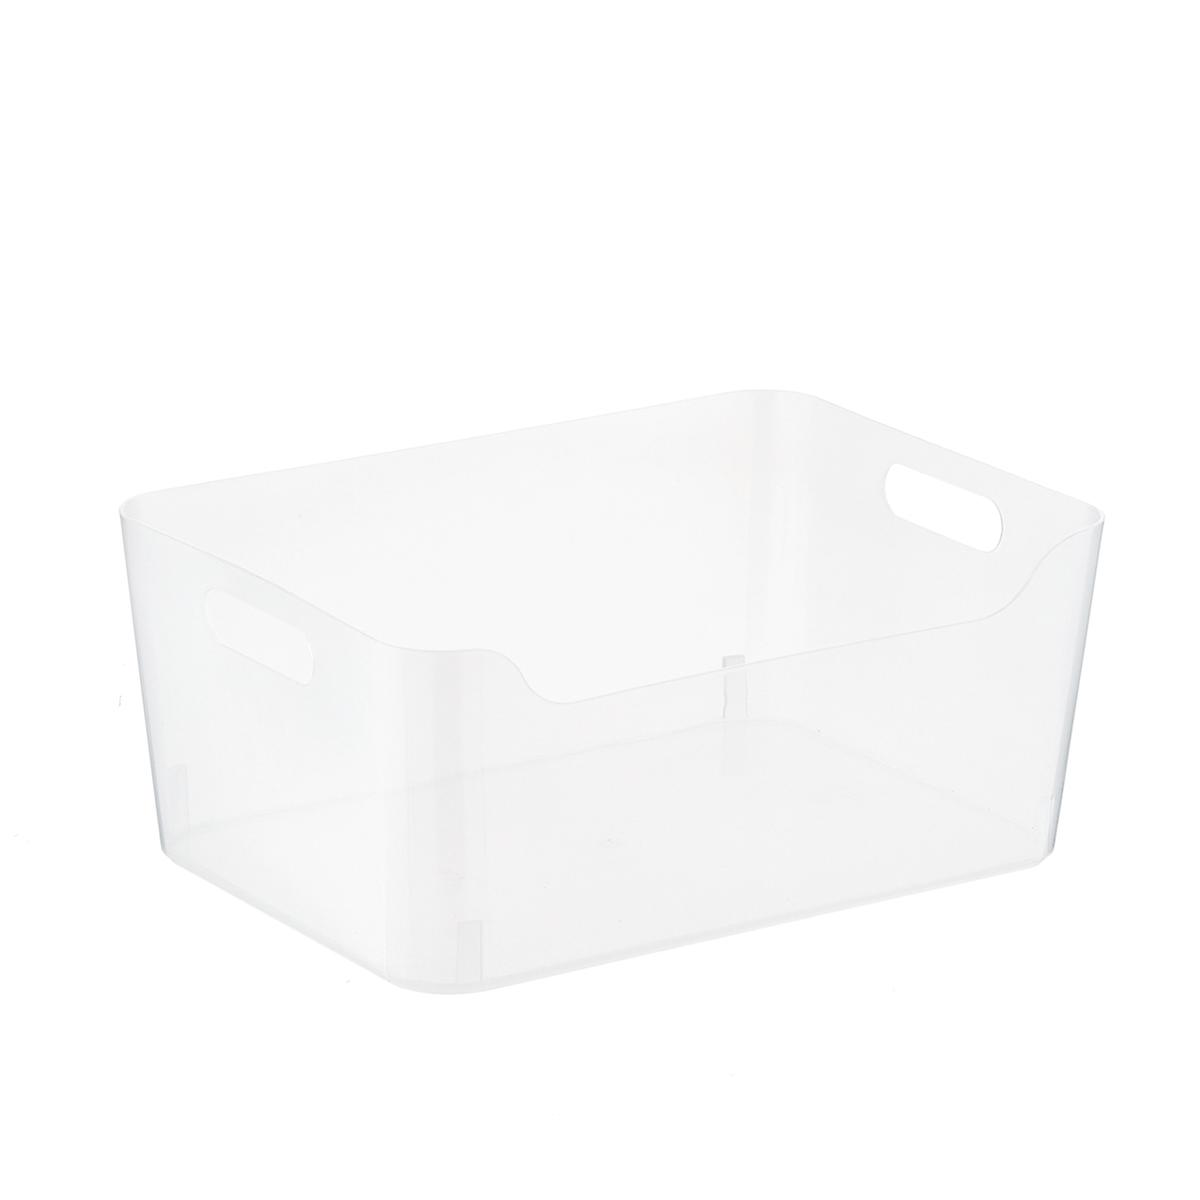 Clear Plastic Storage Bins with Handles | The Container Store